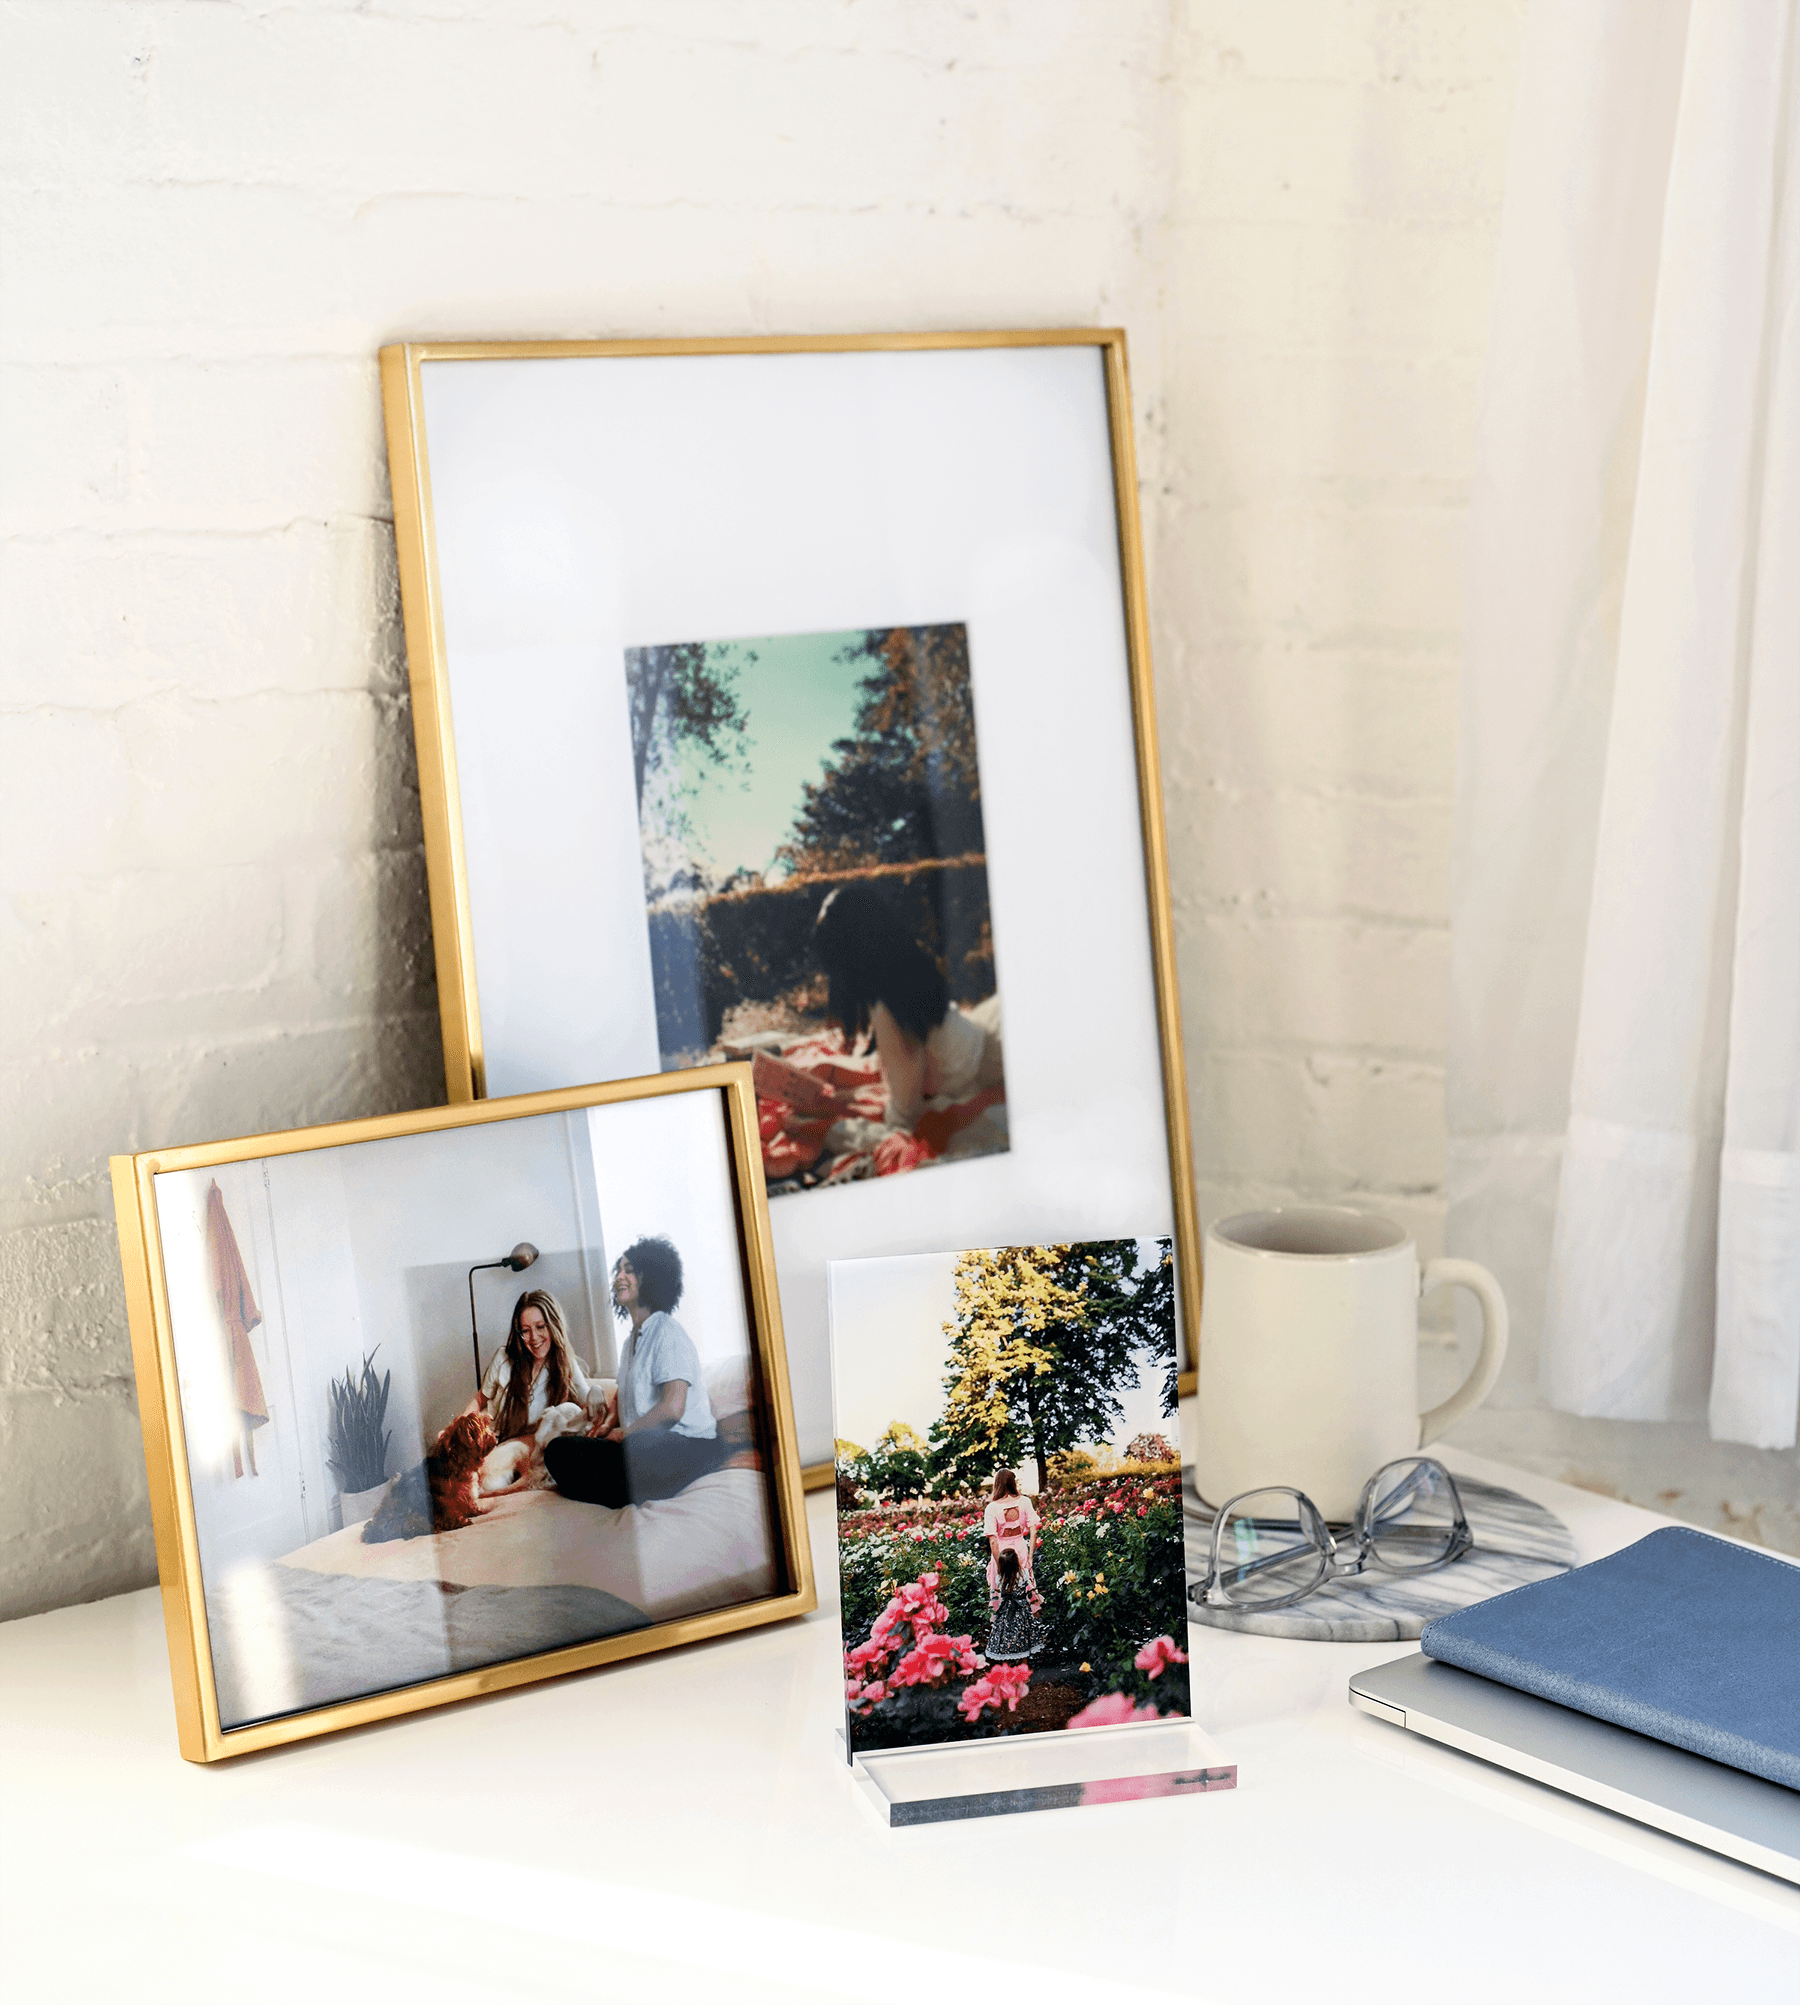 Print your favorite romantic moments for your home office with tabletop decor